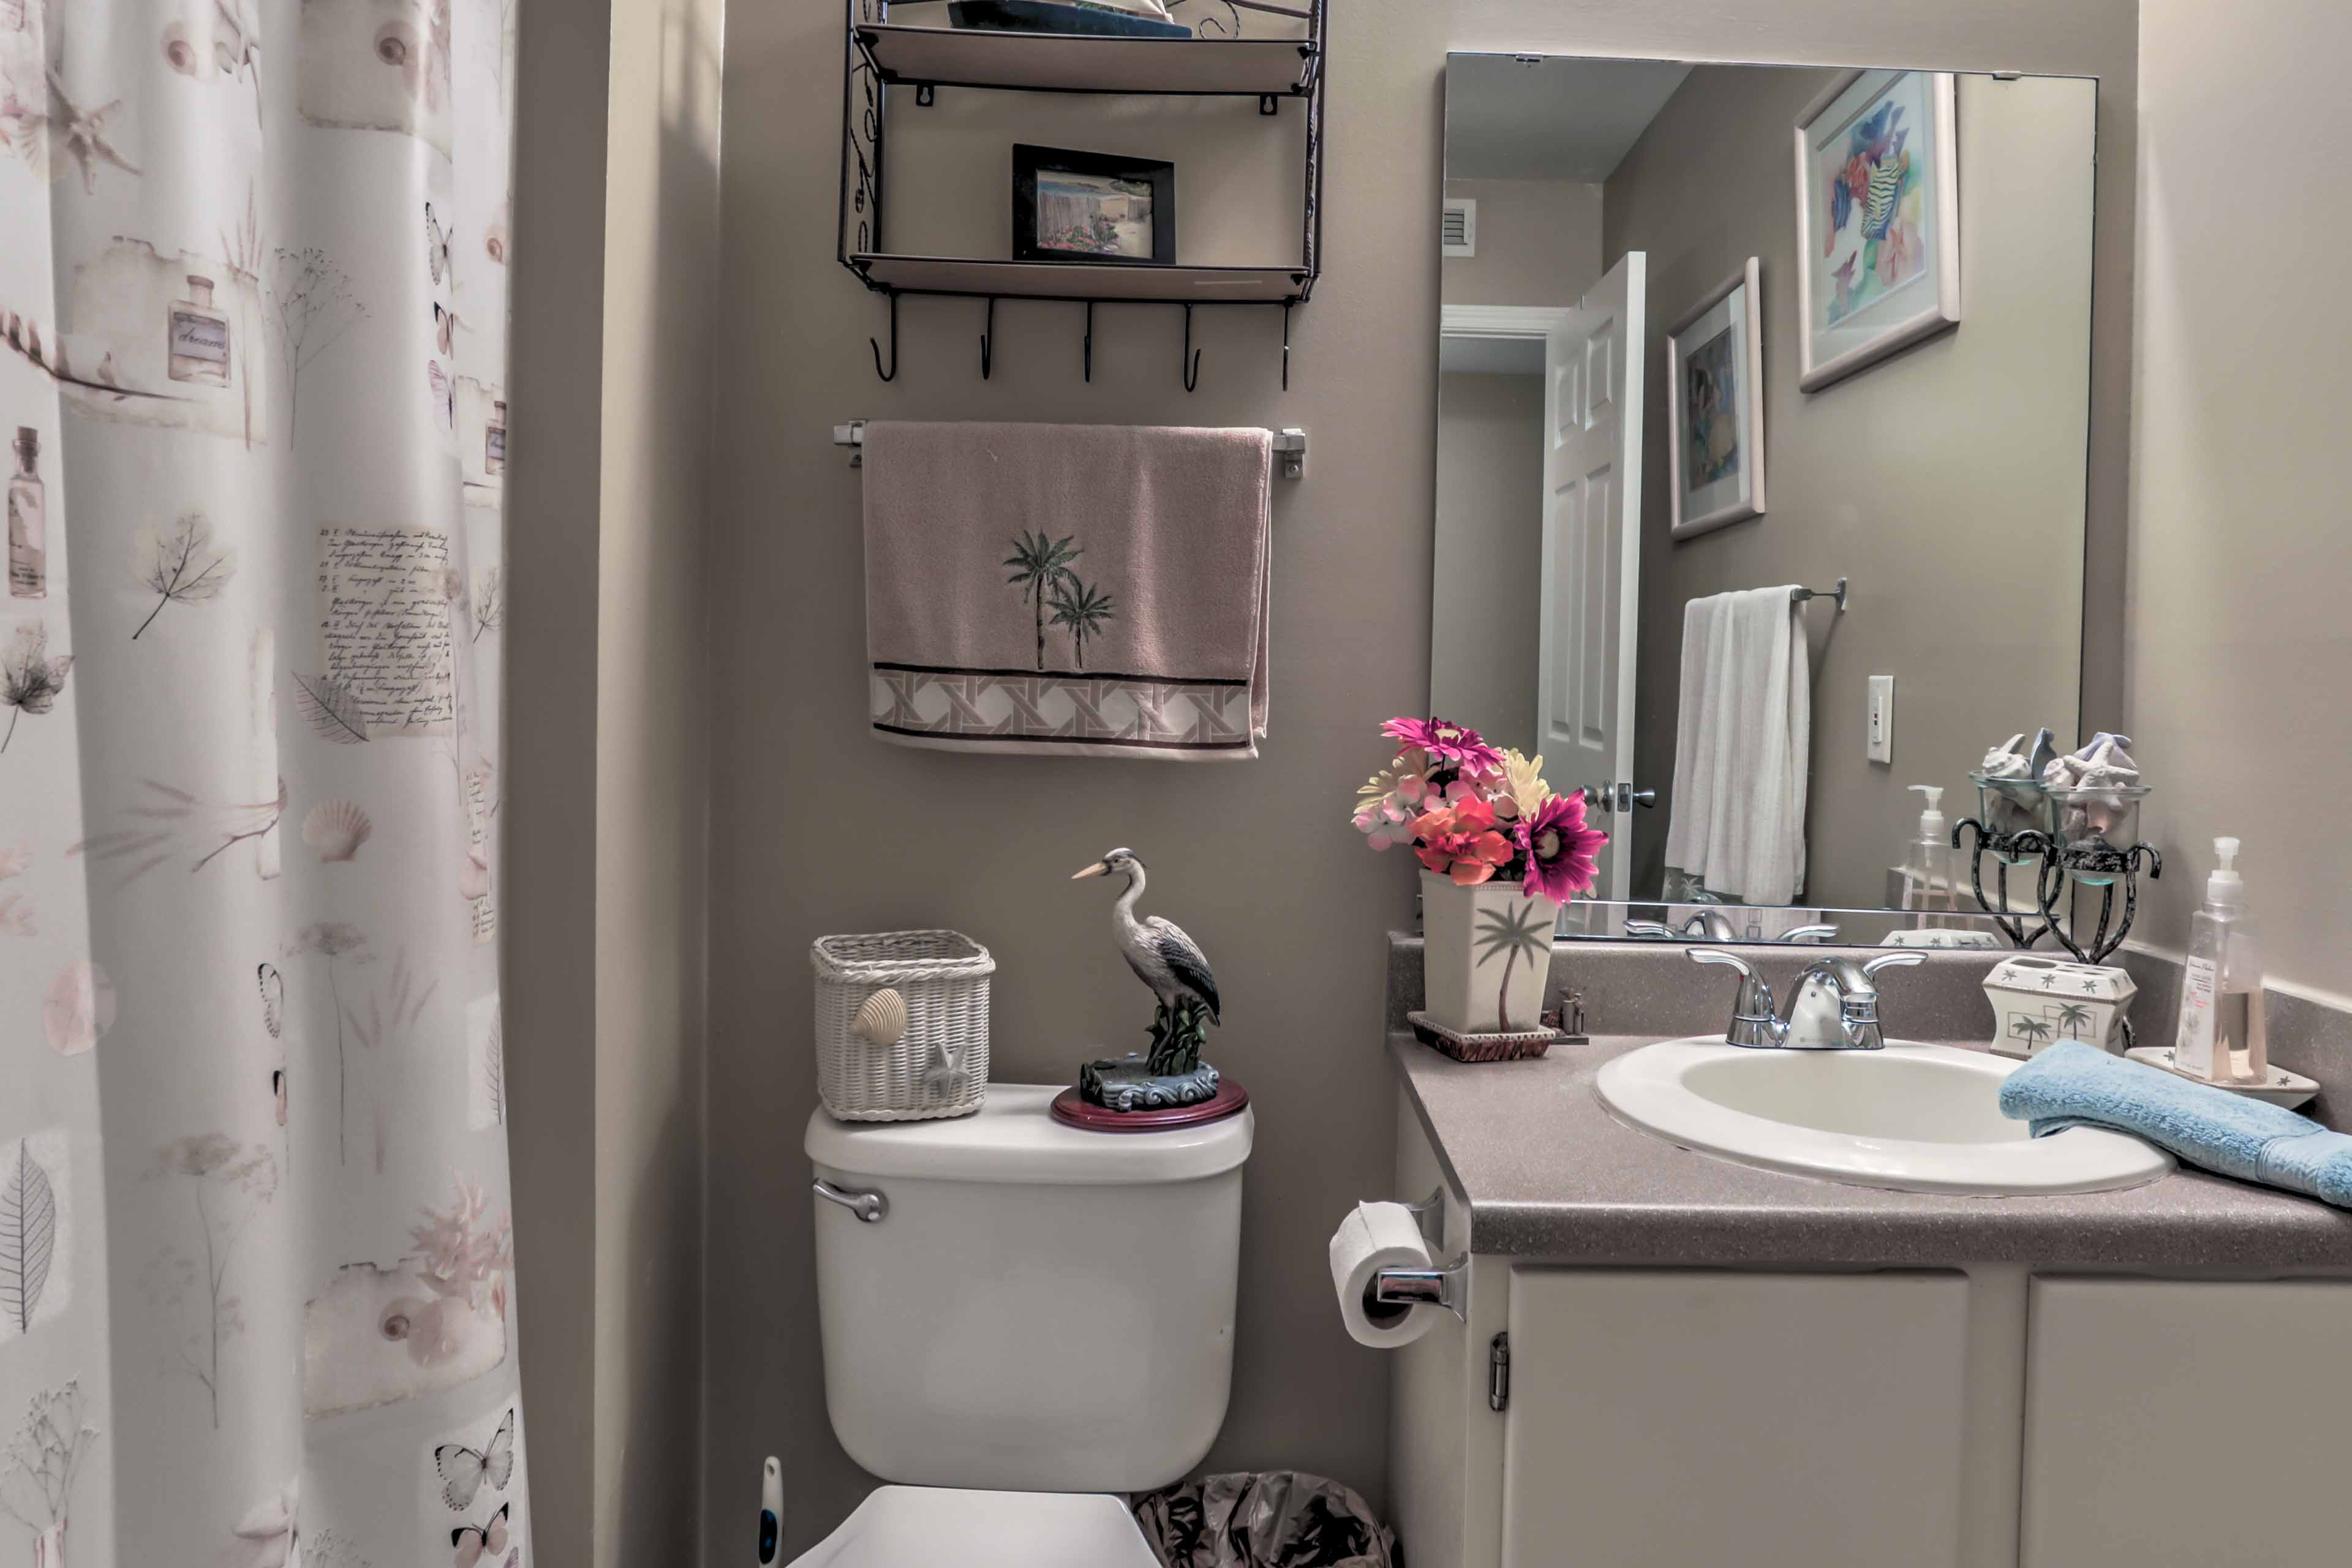 The home features 2 bathrooms for guest use.